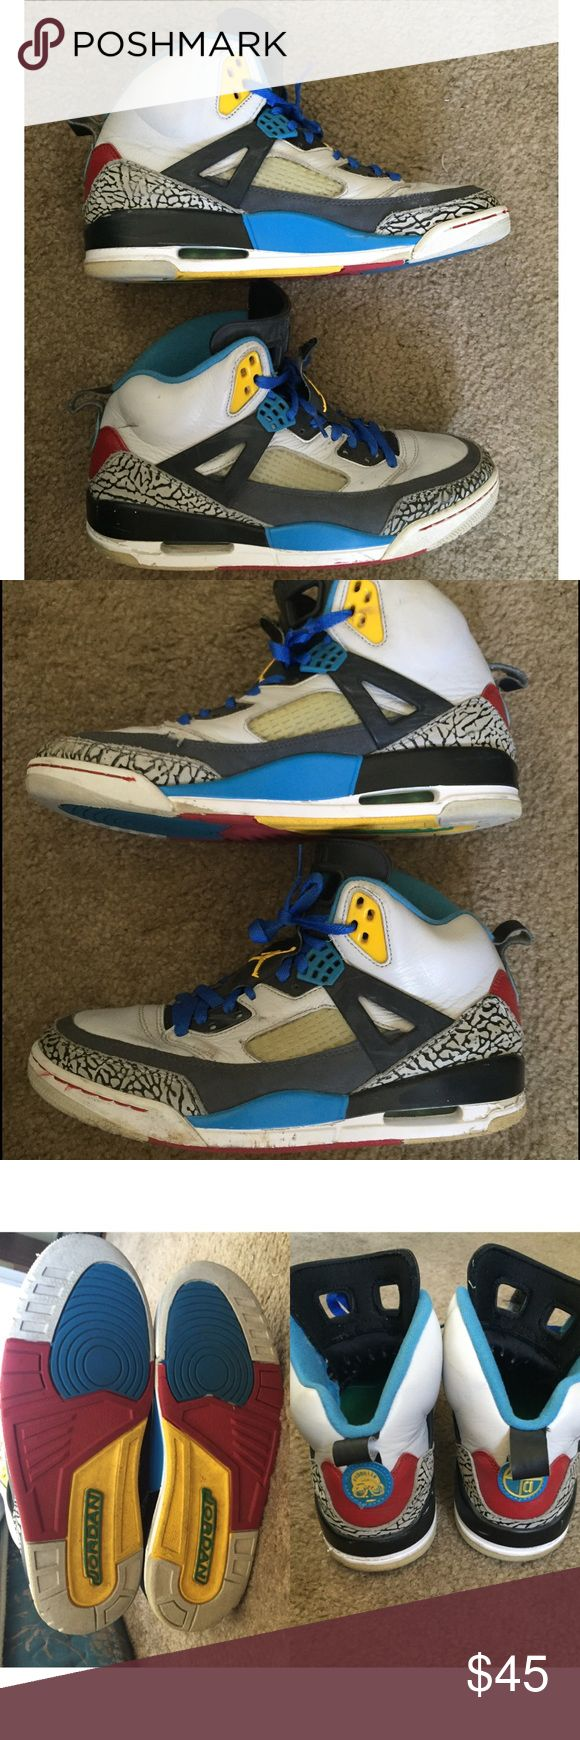 Jordan spizike Bordeaux Jordan spizike Bordeaux. There's creasing and it's a little dirty. Also some paint are off in some areas like next to the air unit as you can see in the pictures. Jordan Shoes Sneakers